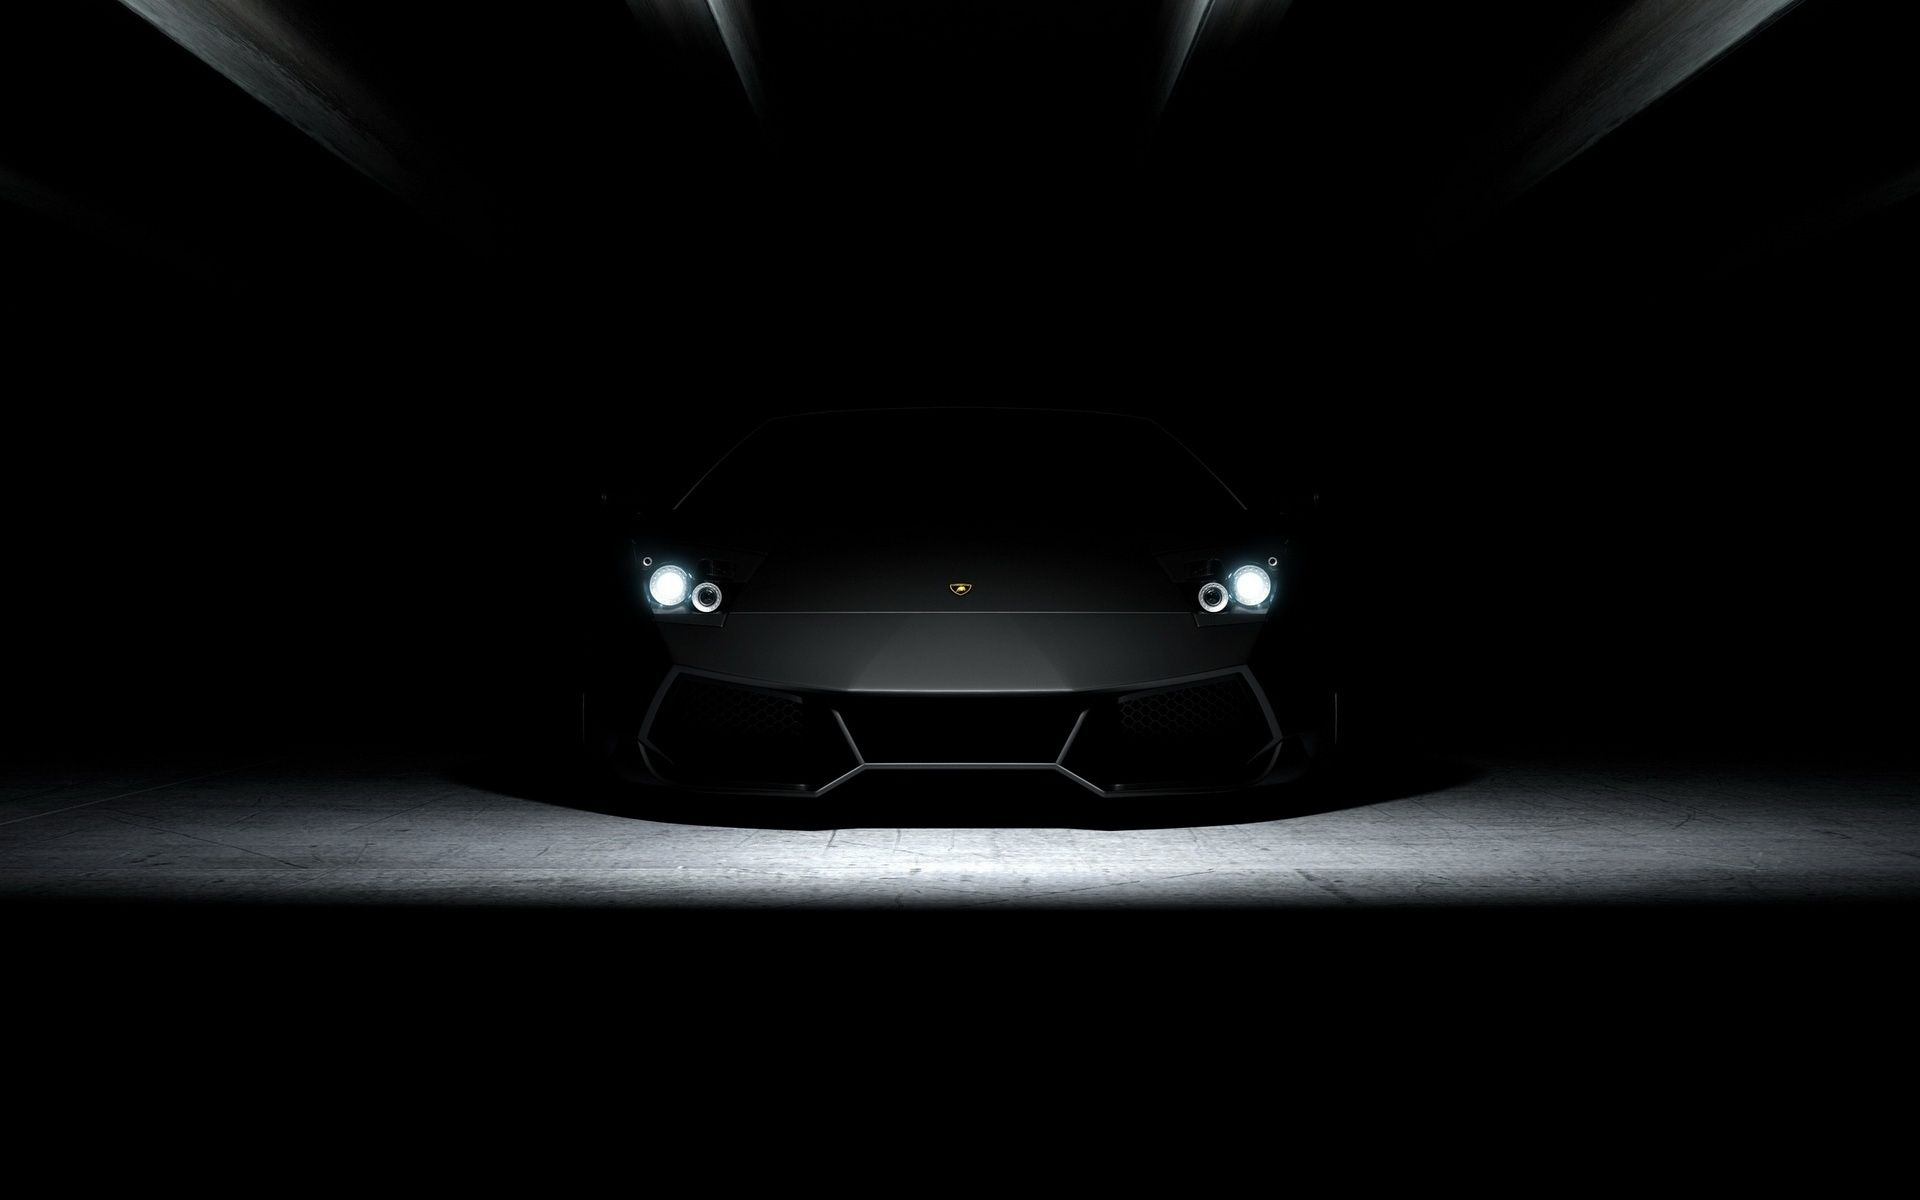 50 Super Sports Car Wallpapers That Ll Blow Your Desktop Away Lamborghini Aventador Wallpaper Sports Car Wallpaper Lamborghini Logo